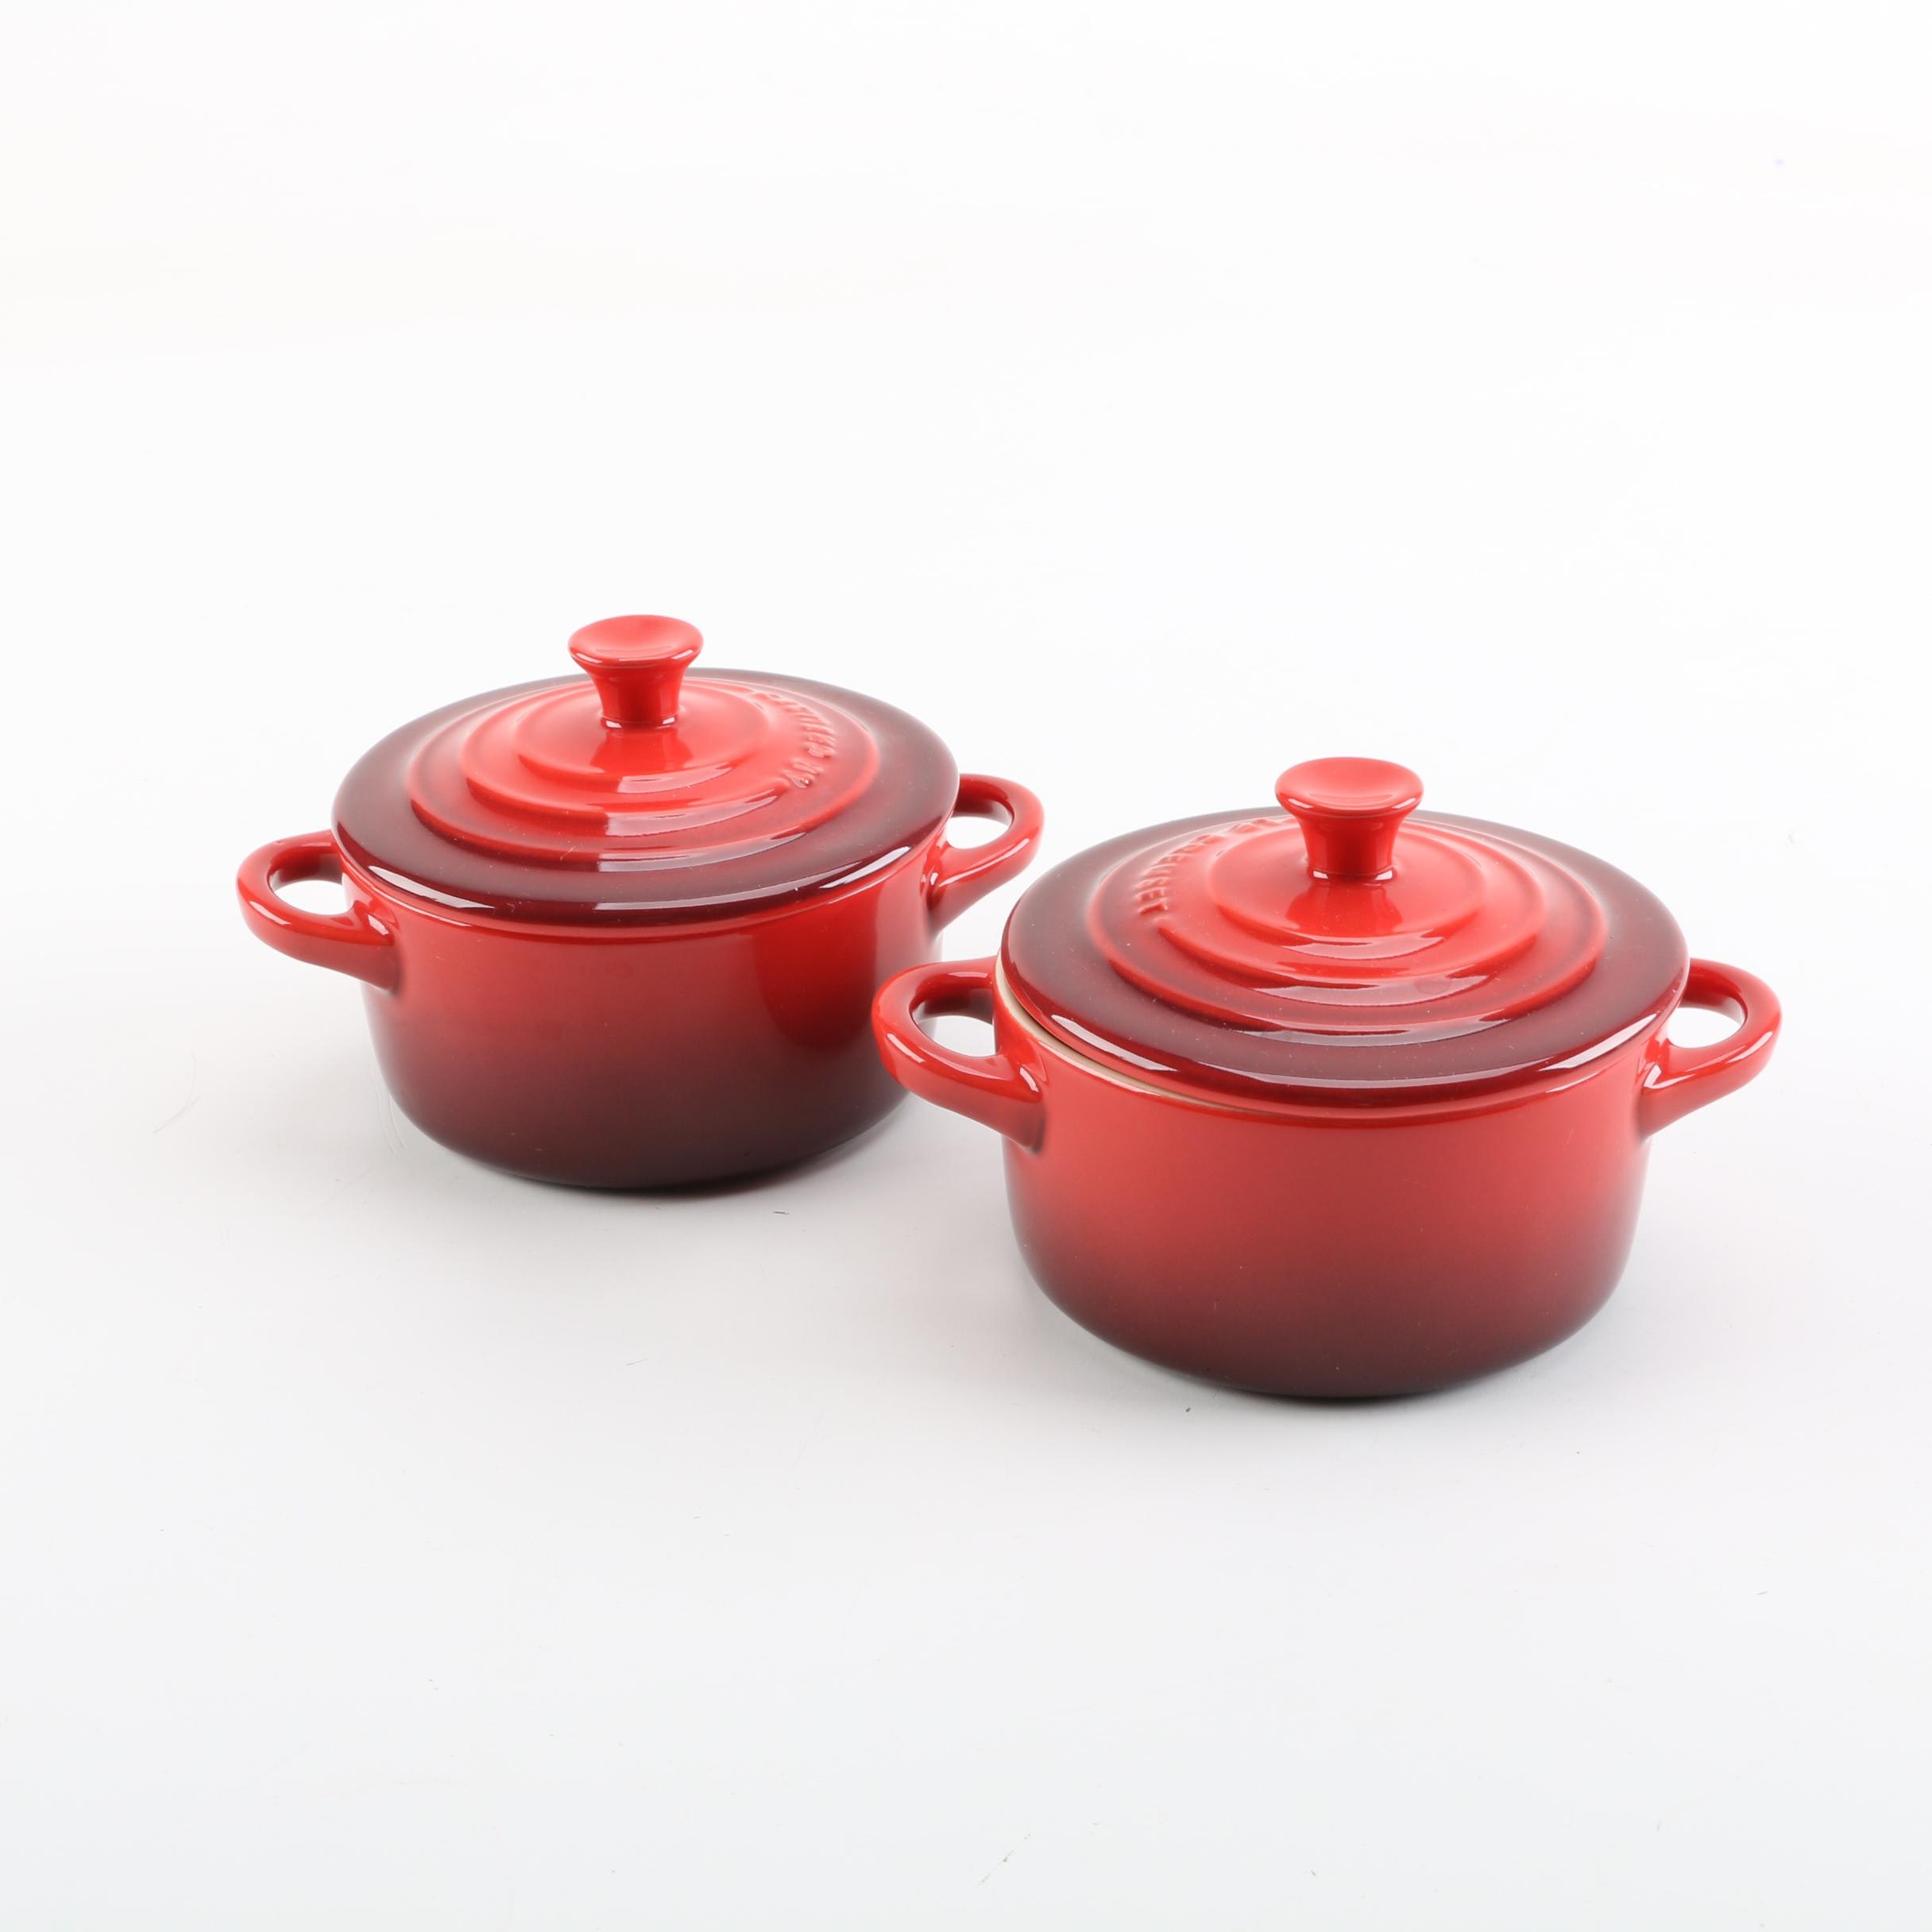 Le Creuset Mini Round Casserole Dishes